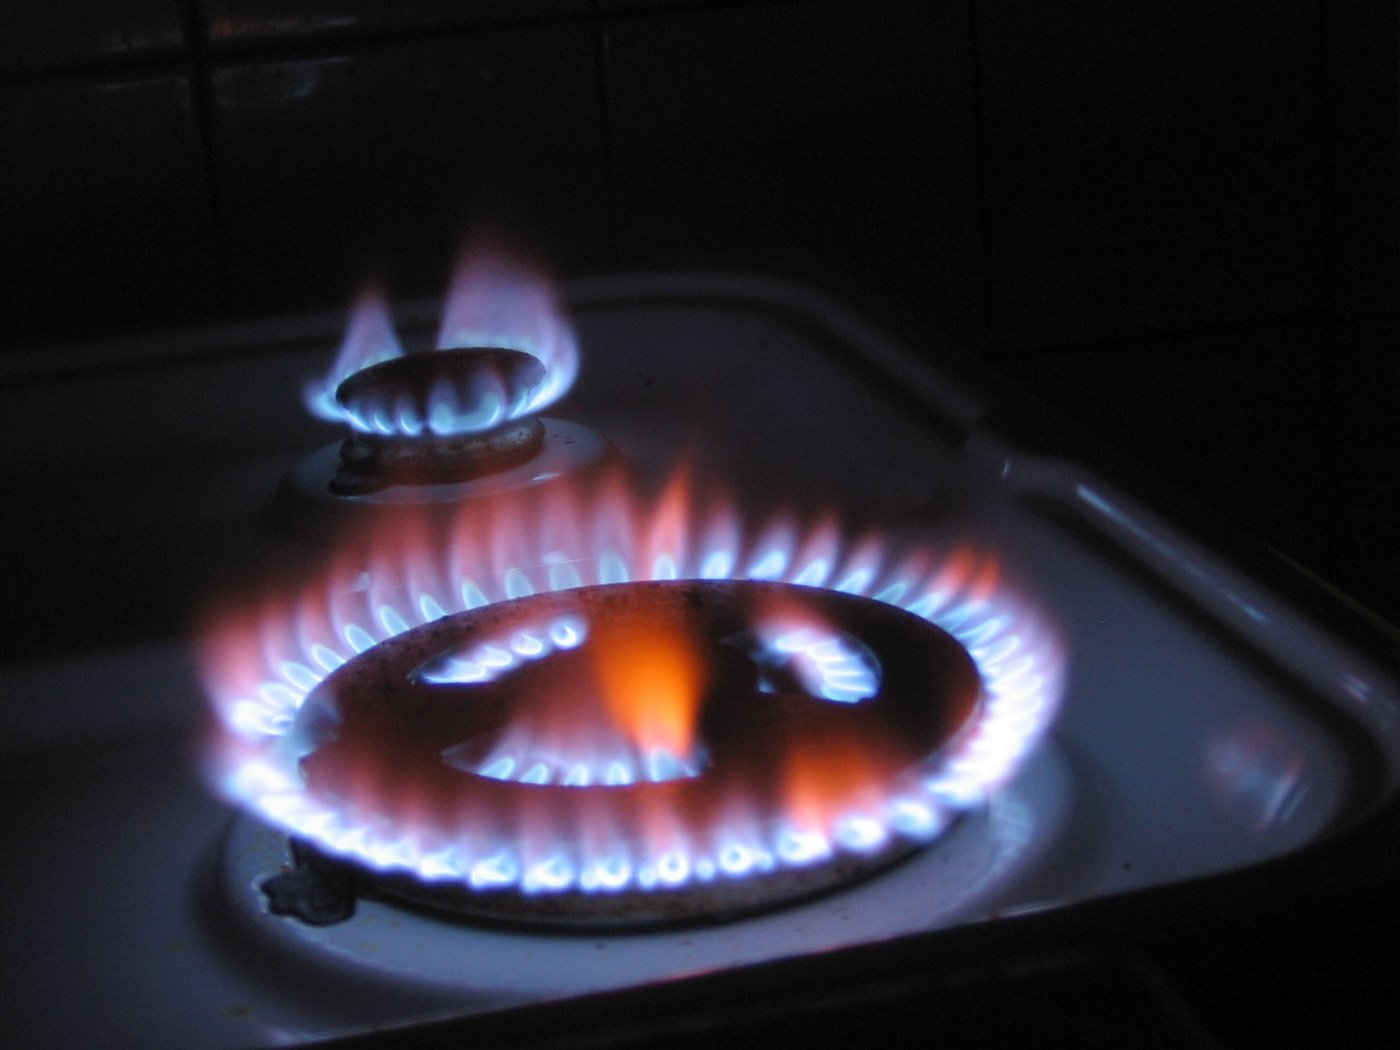 burning fire from a gas range